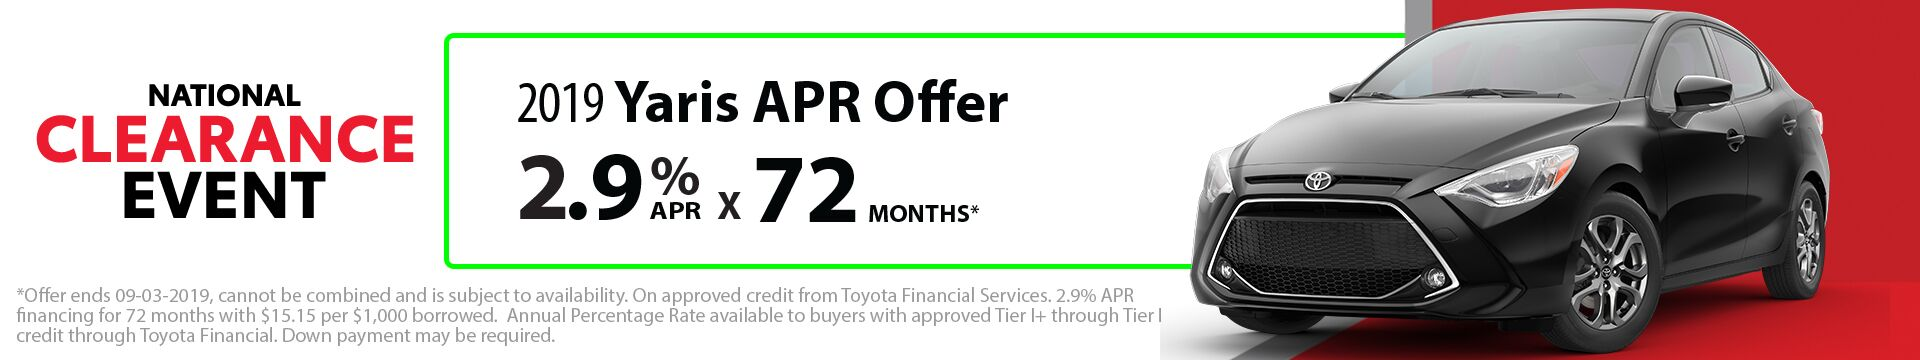 2019 Yaris APR Offer